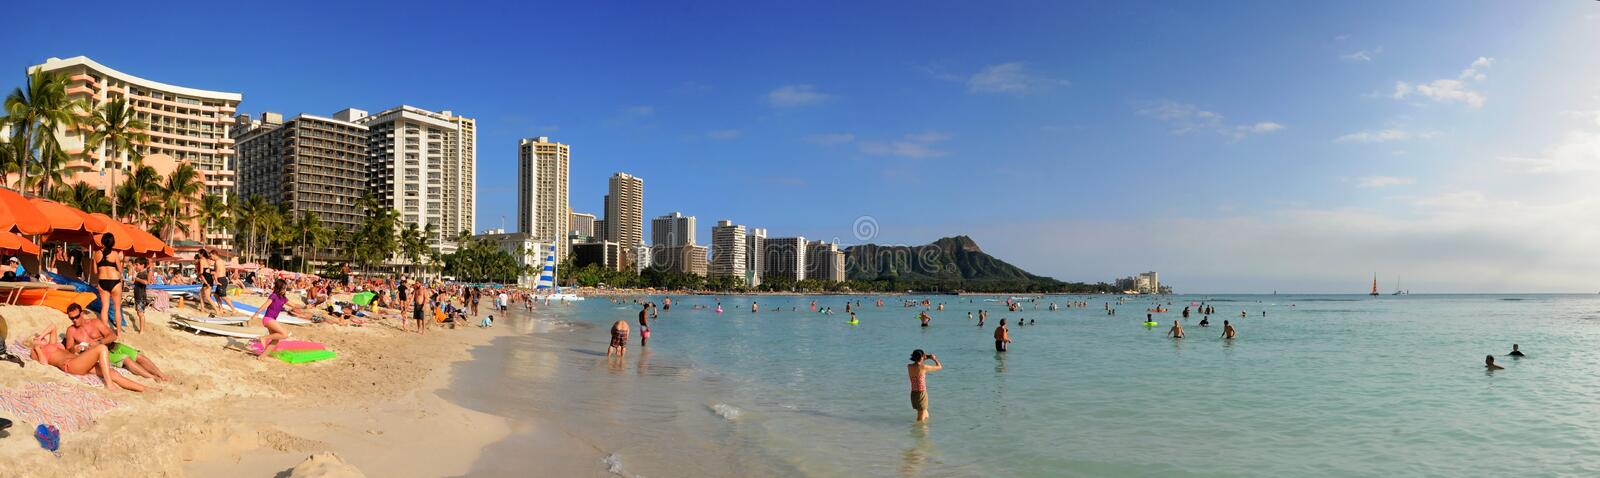 Waikiki Honolulu Hawaii. Panorama of Waikiki Beach Honolulu Hawaii stock photos